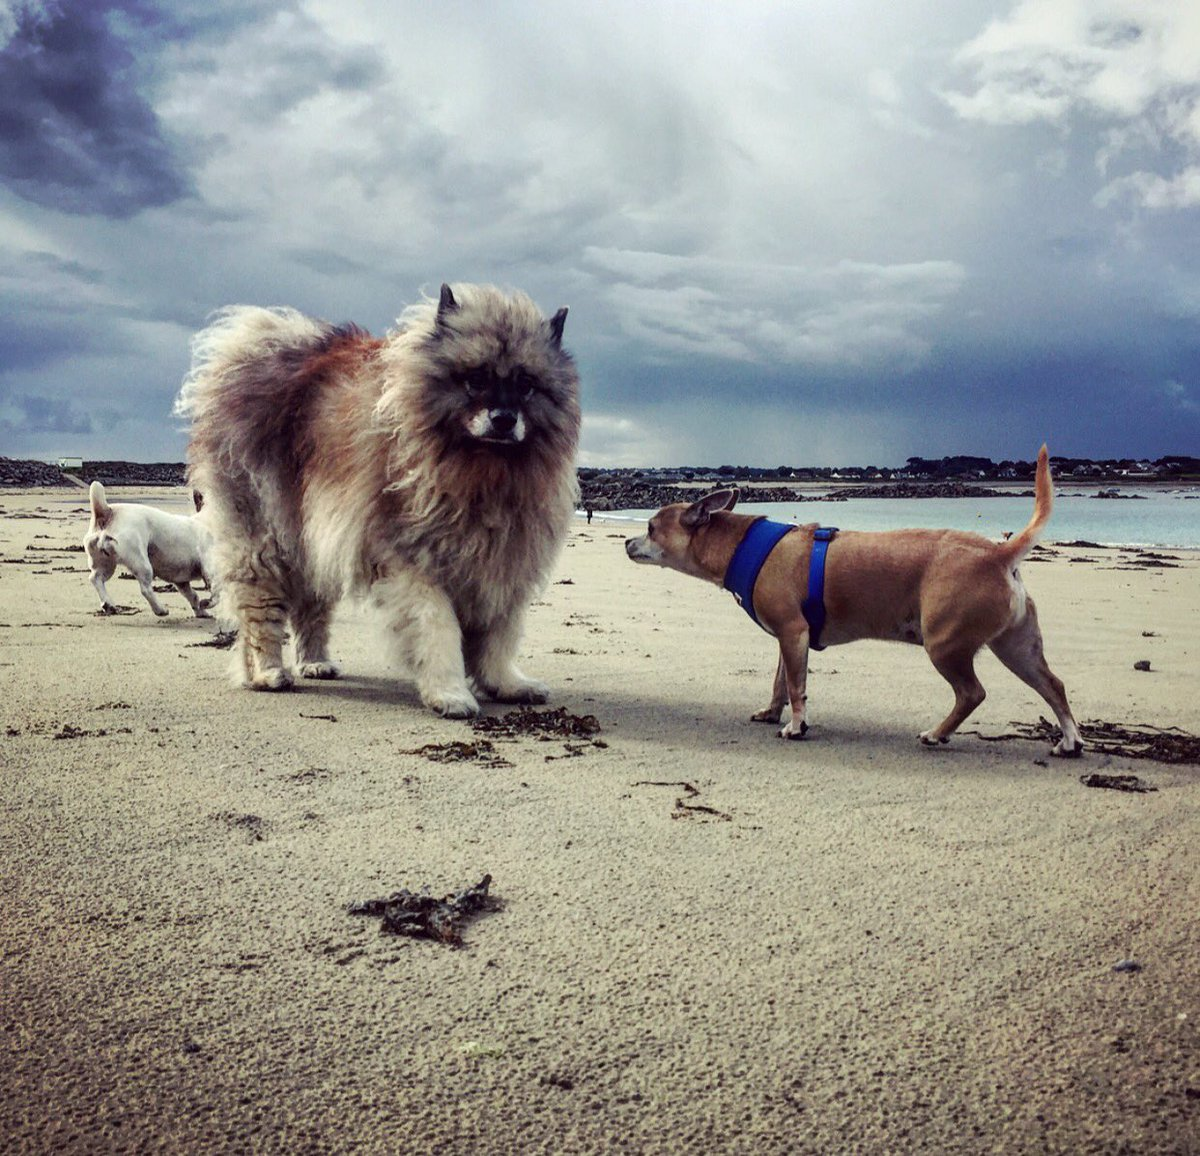 I had so much fun down the beach with Ellie today. I wasn't sure on this friend though, he was very hairy #dogsoftwitter #hairyfriend pic.twitter.com/Z3Ot8QSD7u